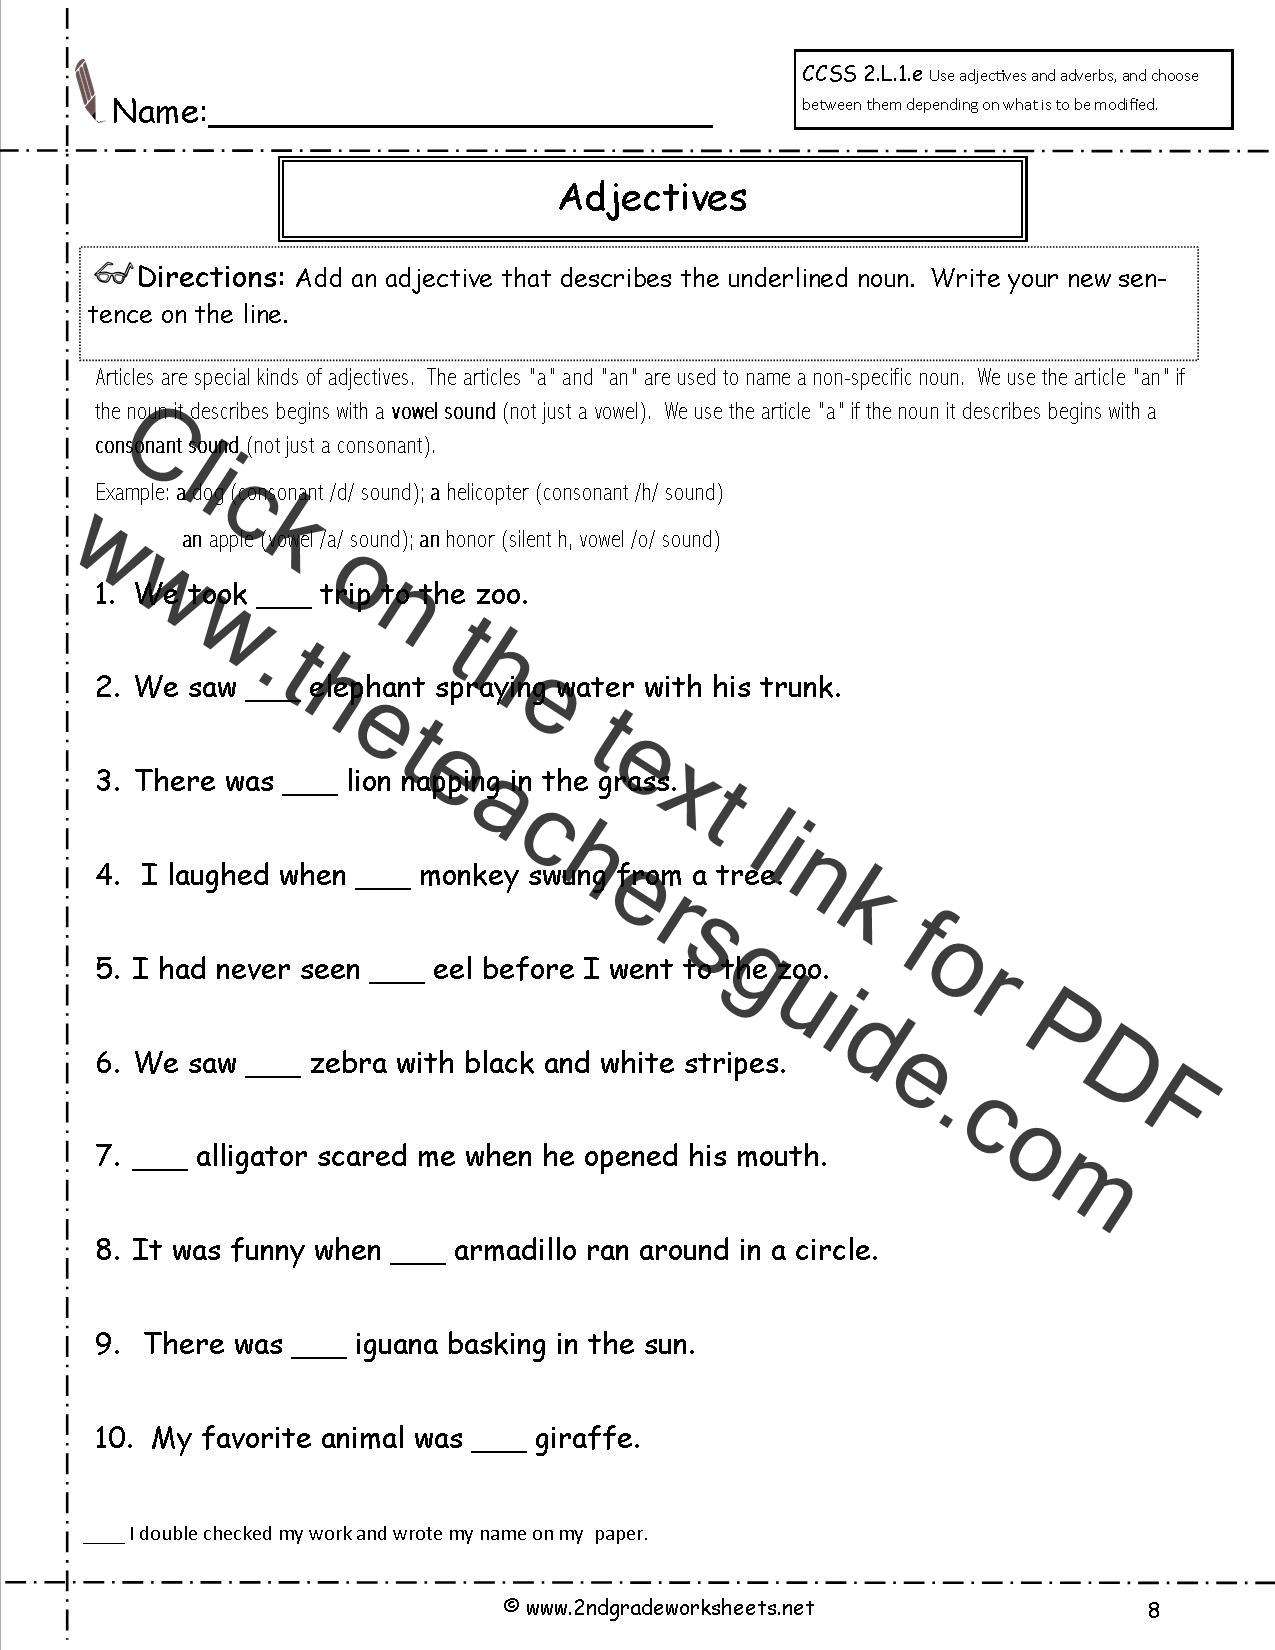 Worksheets Grammar Worksheets College grammar worksheets for teaching english as a second language free and printouts